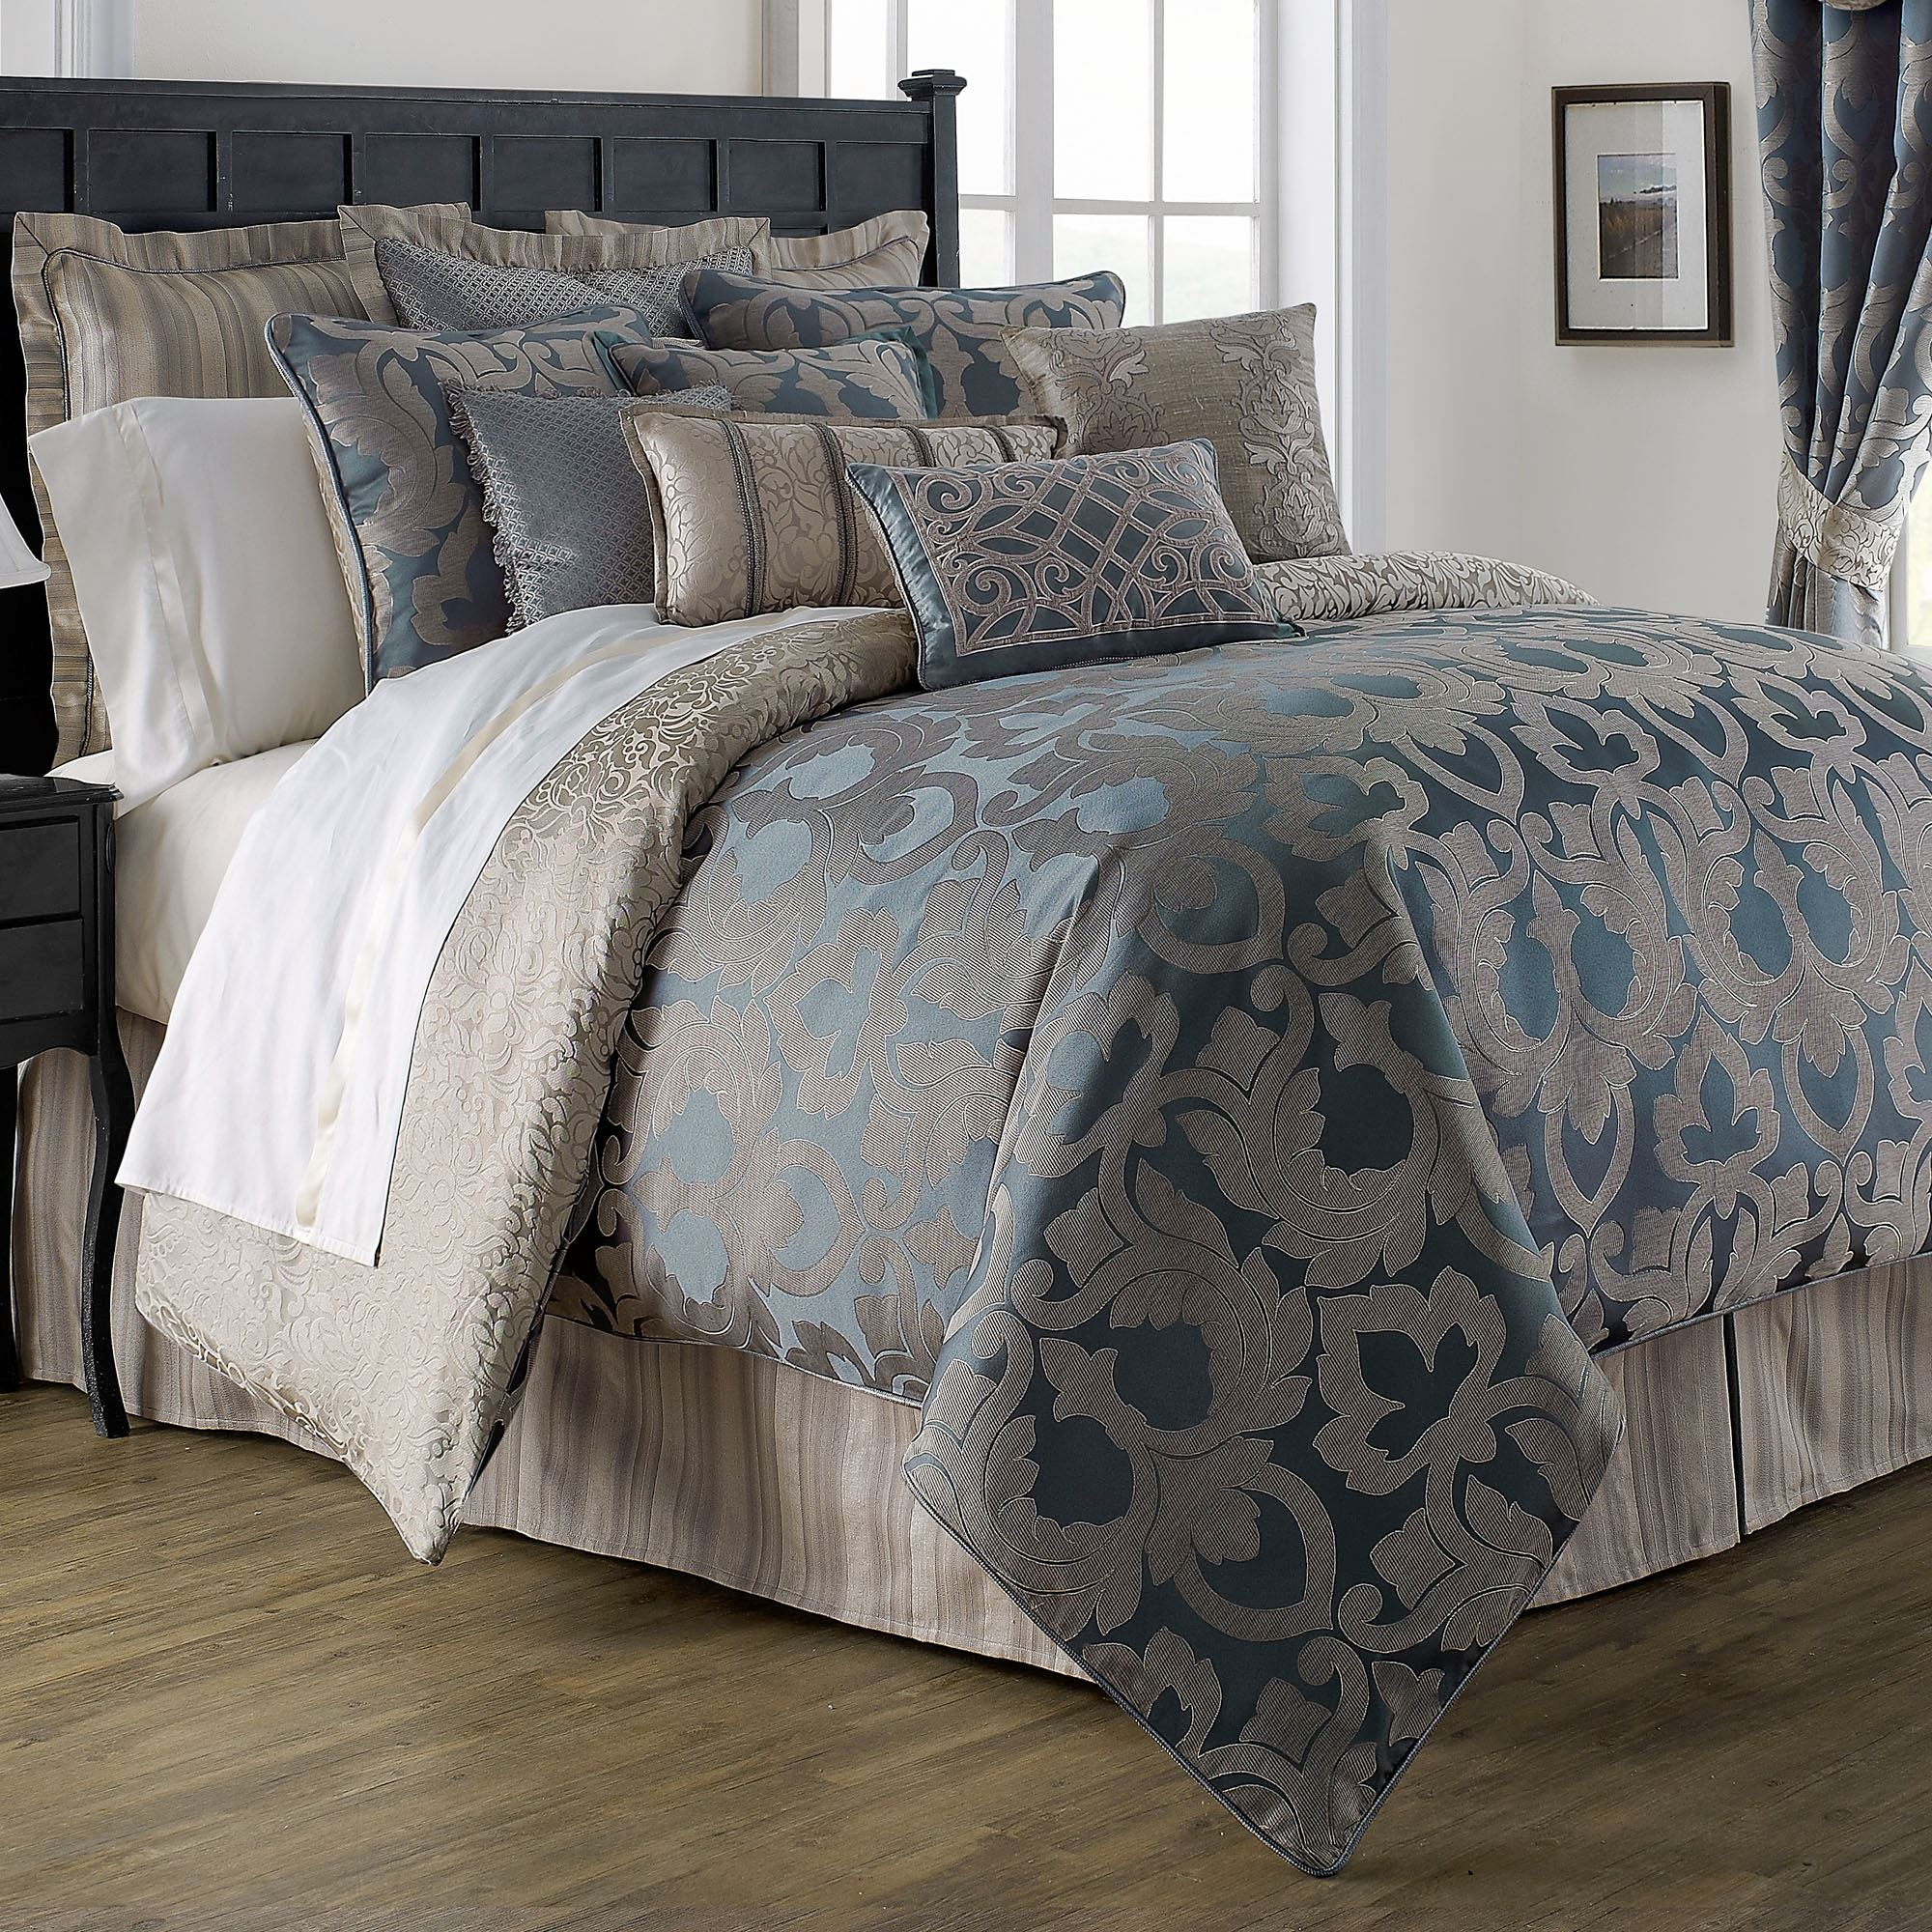 is style space comforter decorate your small what it s without blue barn pin to new for just spaces compromises how perfect know function collection and the tiny this of with explanation making gray pottery want a